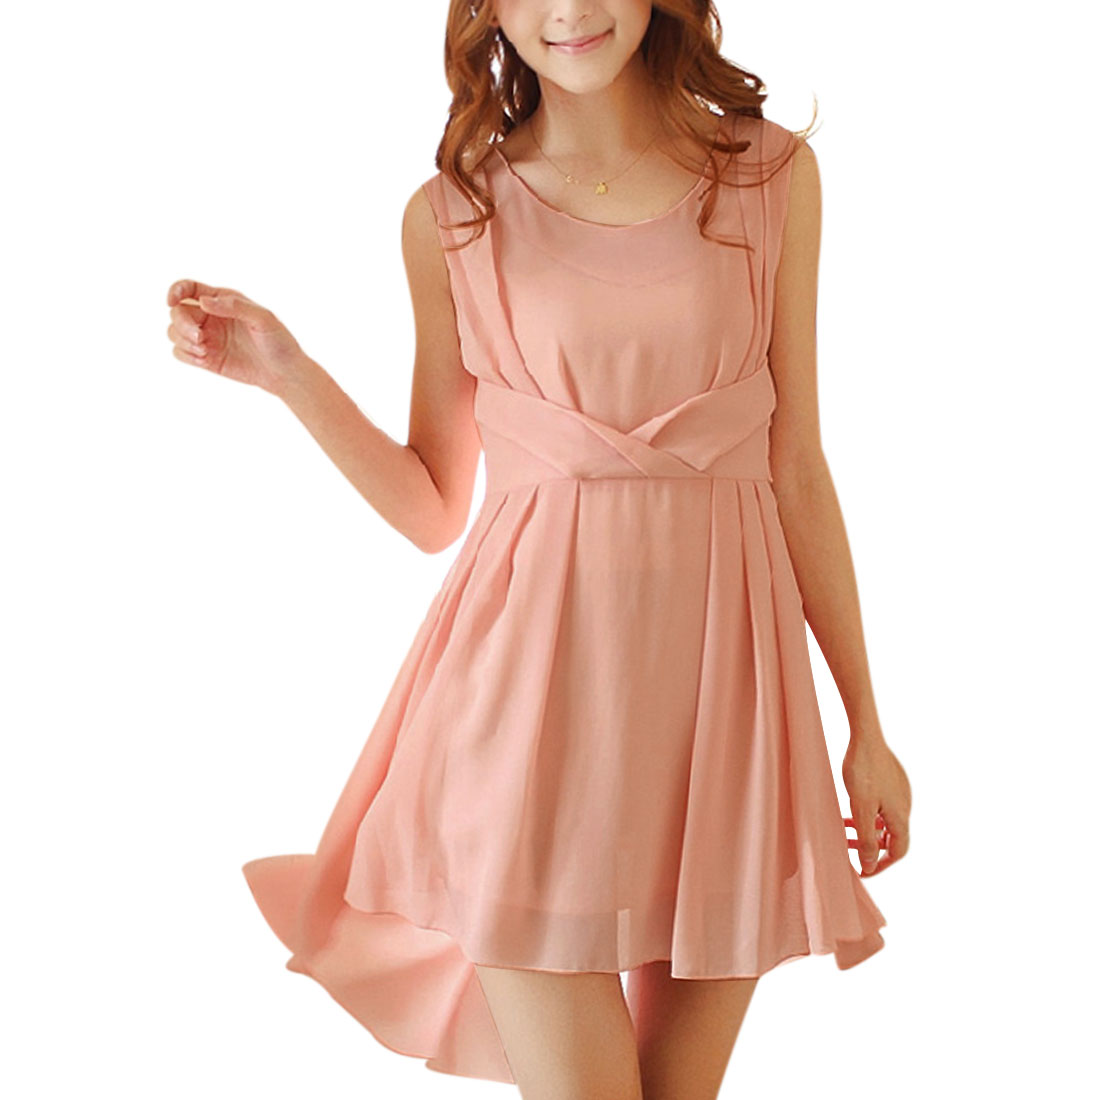 Women Zipper Up Scoop Neck Stretchy A Line Dress Pink XS